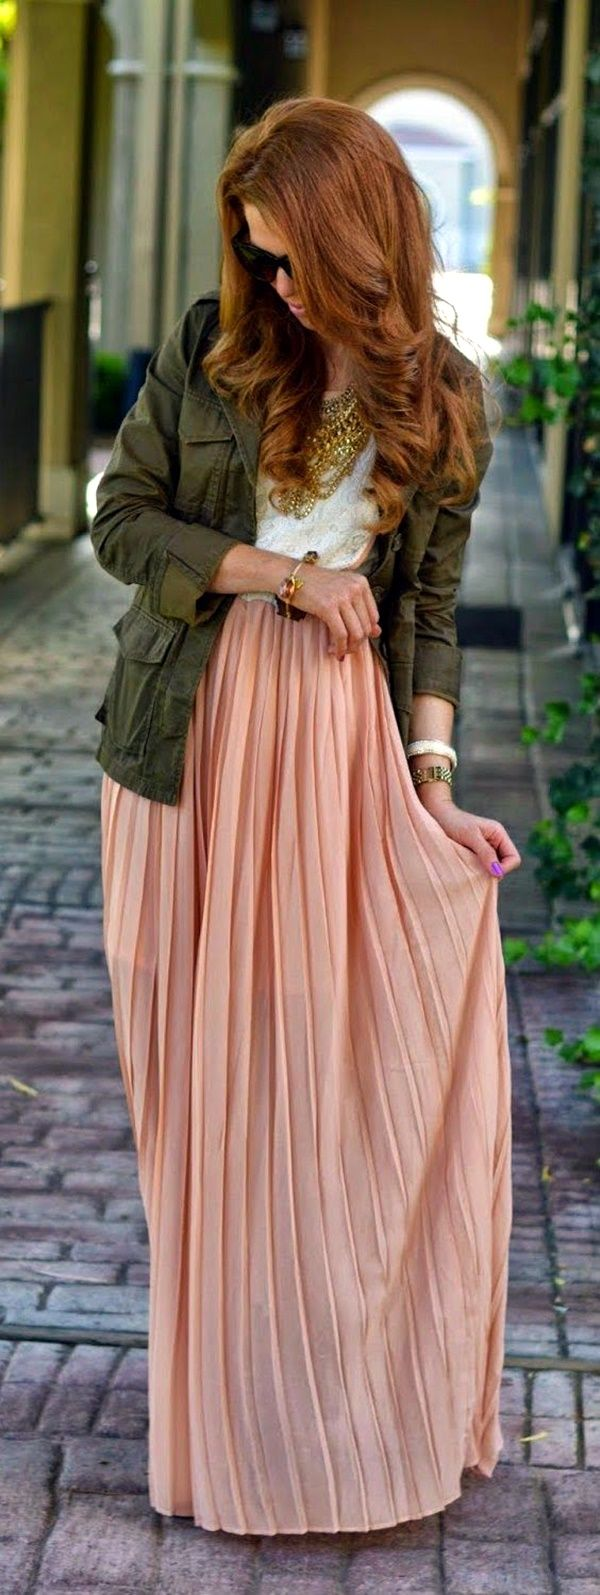 I WOULD LOVE TO PAIR IT WITH MY MAXI SKIRT | 8 Ultra-Modern Rules to Wear Military Jacket | Military Jacket Outfits | Fenzyme.com